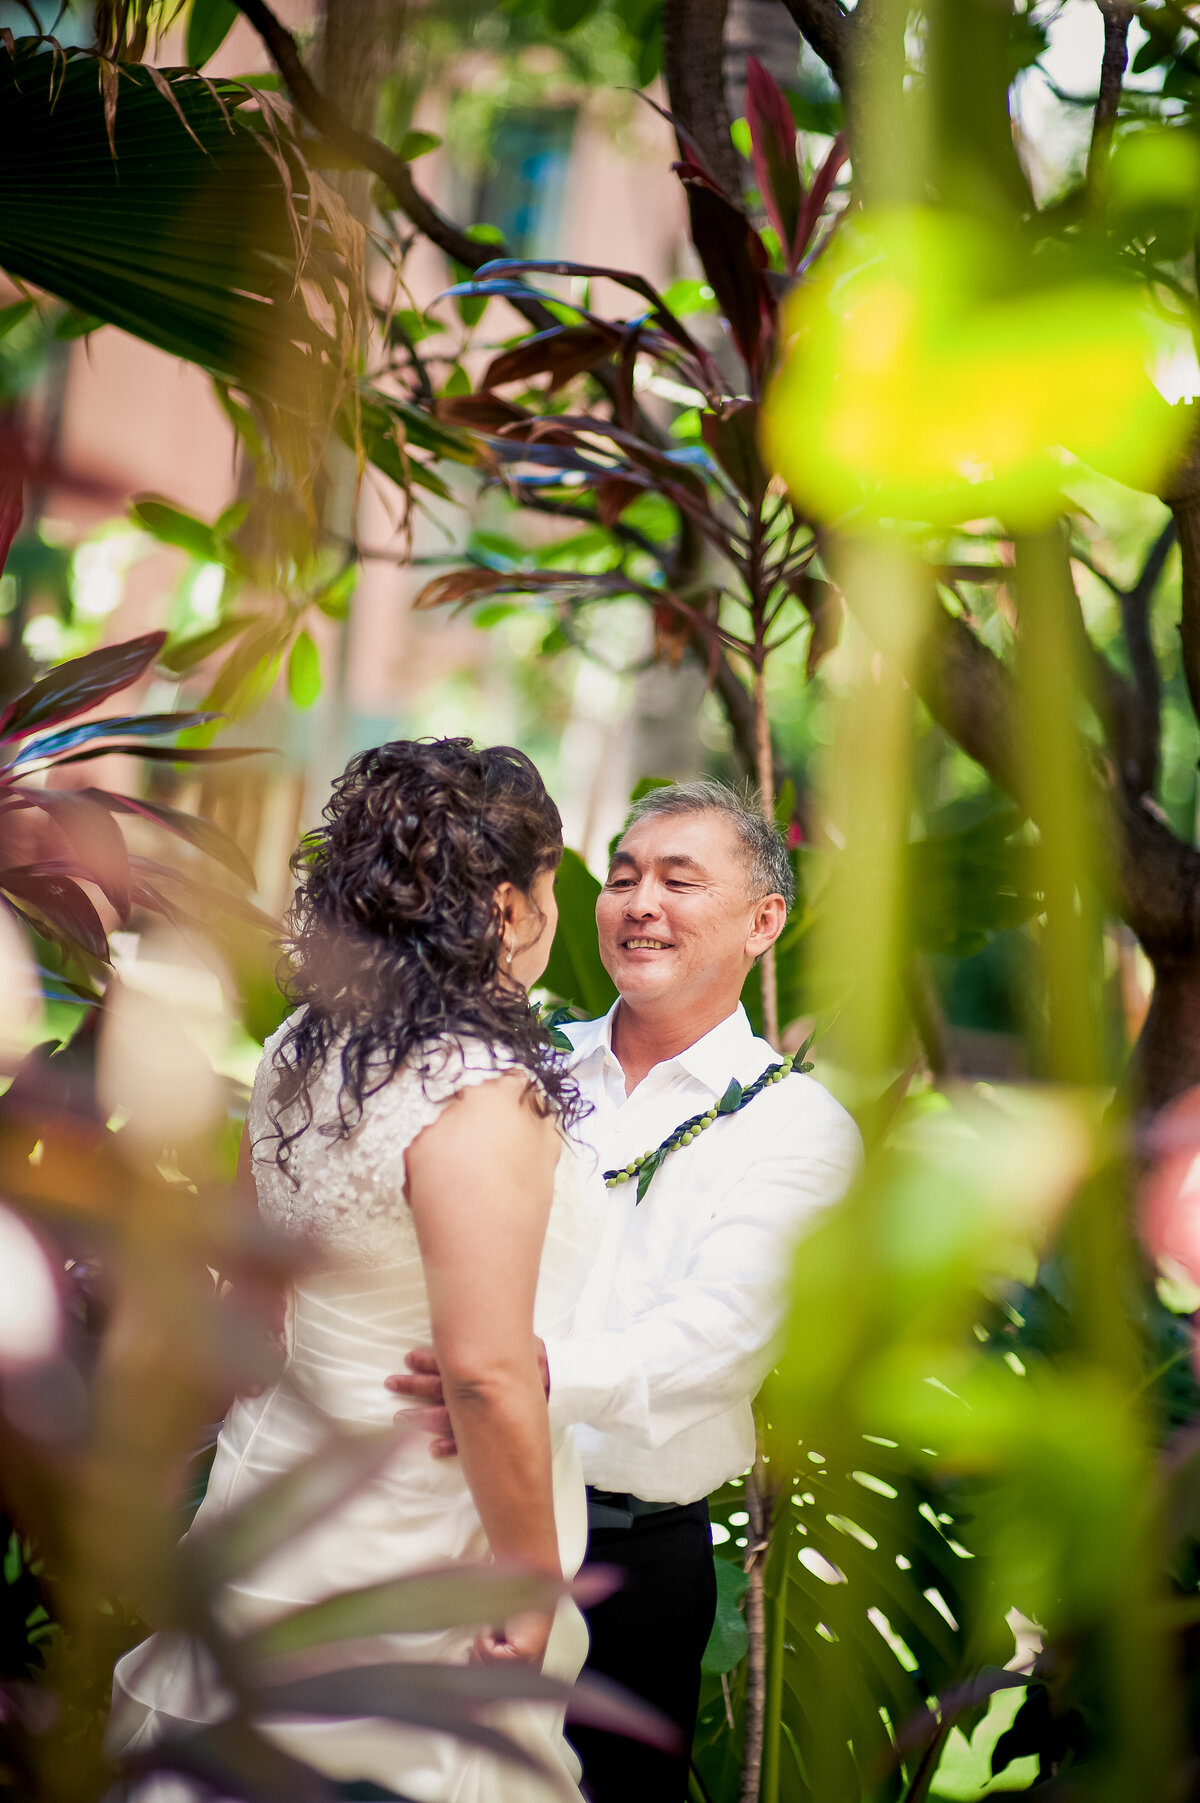 Bride and Groom Have a Candid Moment at the Royal Hawaiian Hotel